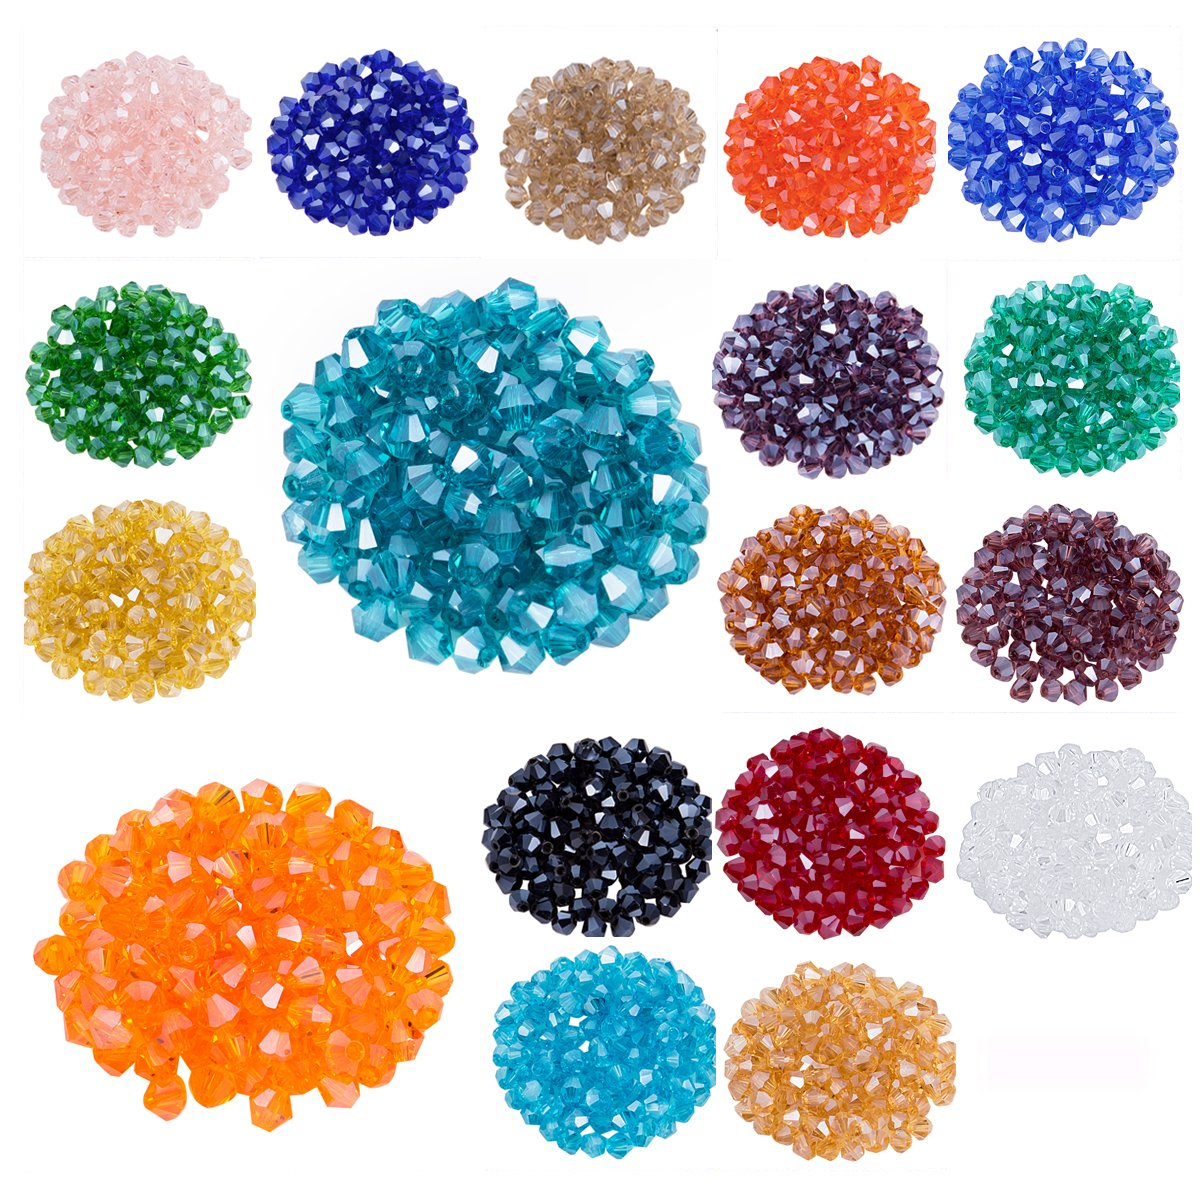 Lot 1800pcs Glass Bicone Beads - LONGWIN Wholesale 4mm Bicone Shaped Crystal Faceted Beads Jewelry Making Supply For DIY Beading Projects, Bracelets, Necklaces, Earrings & Other Jewelries (Color 2) LONG SHENG 4336814796